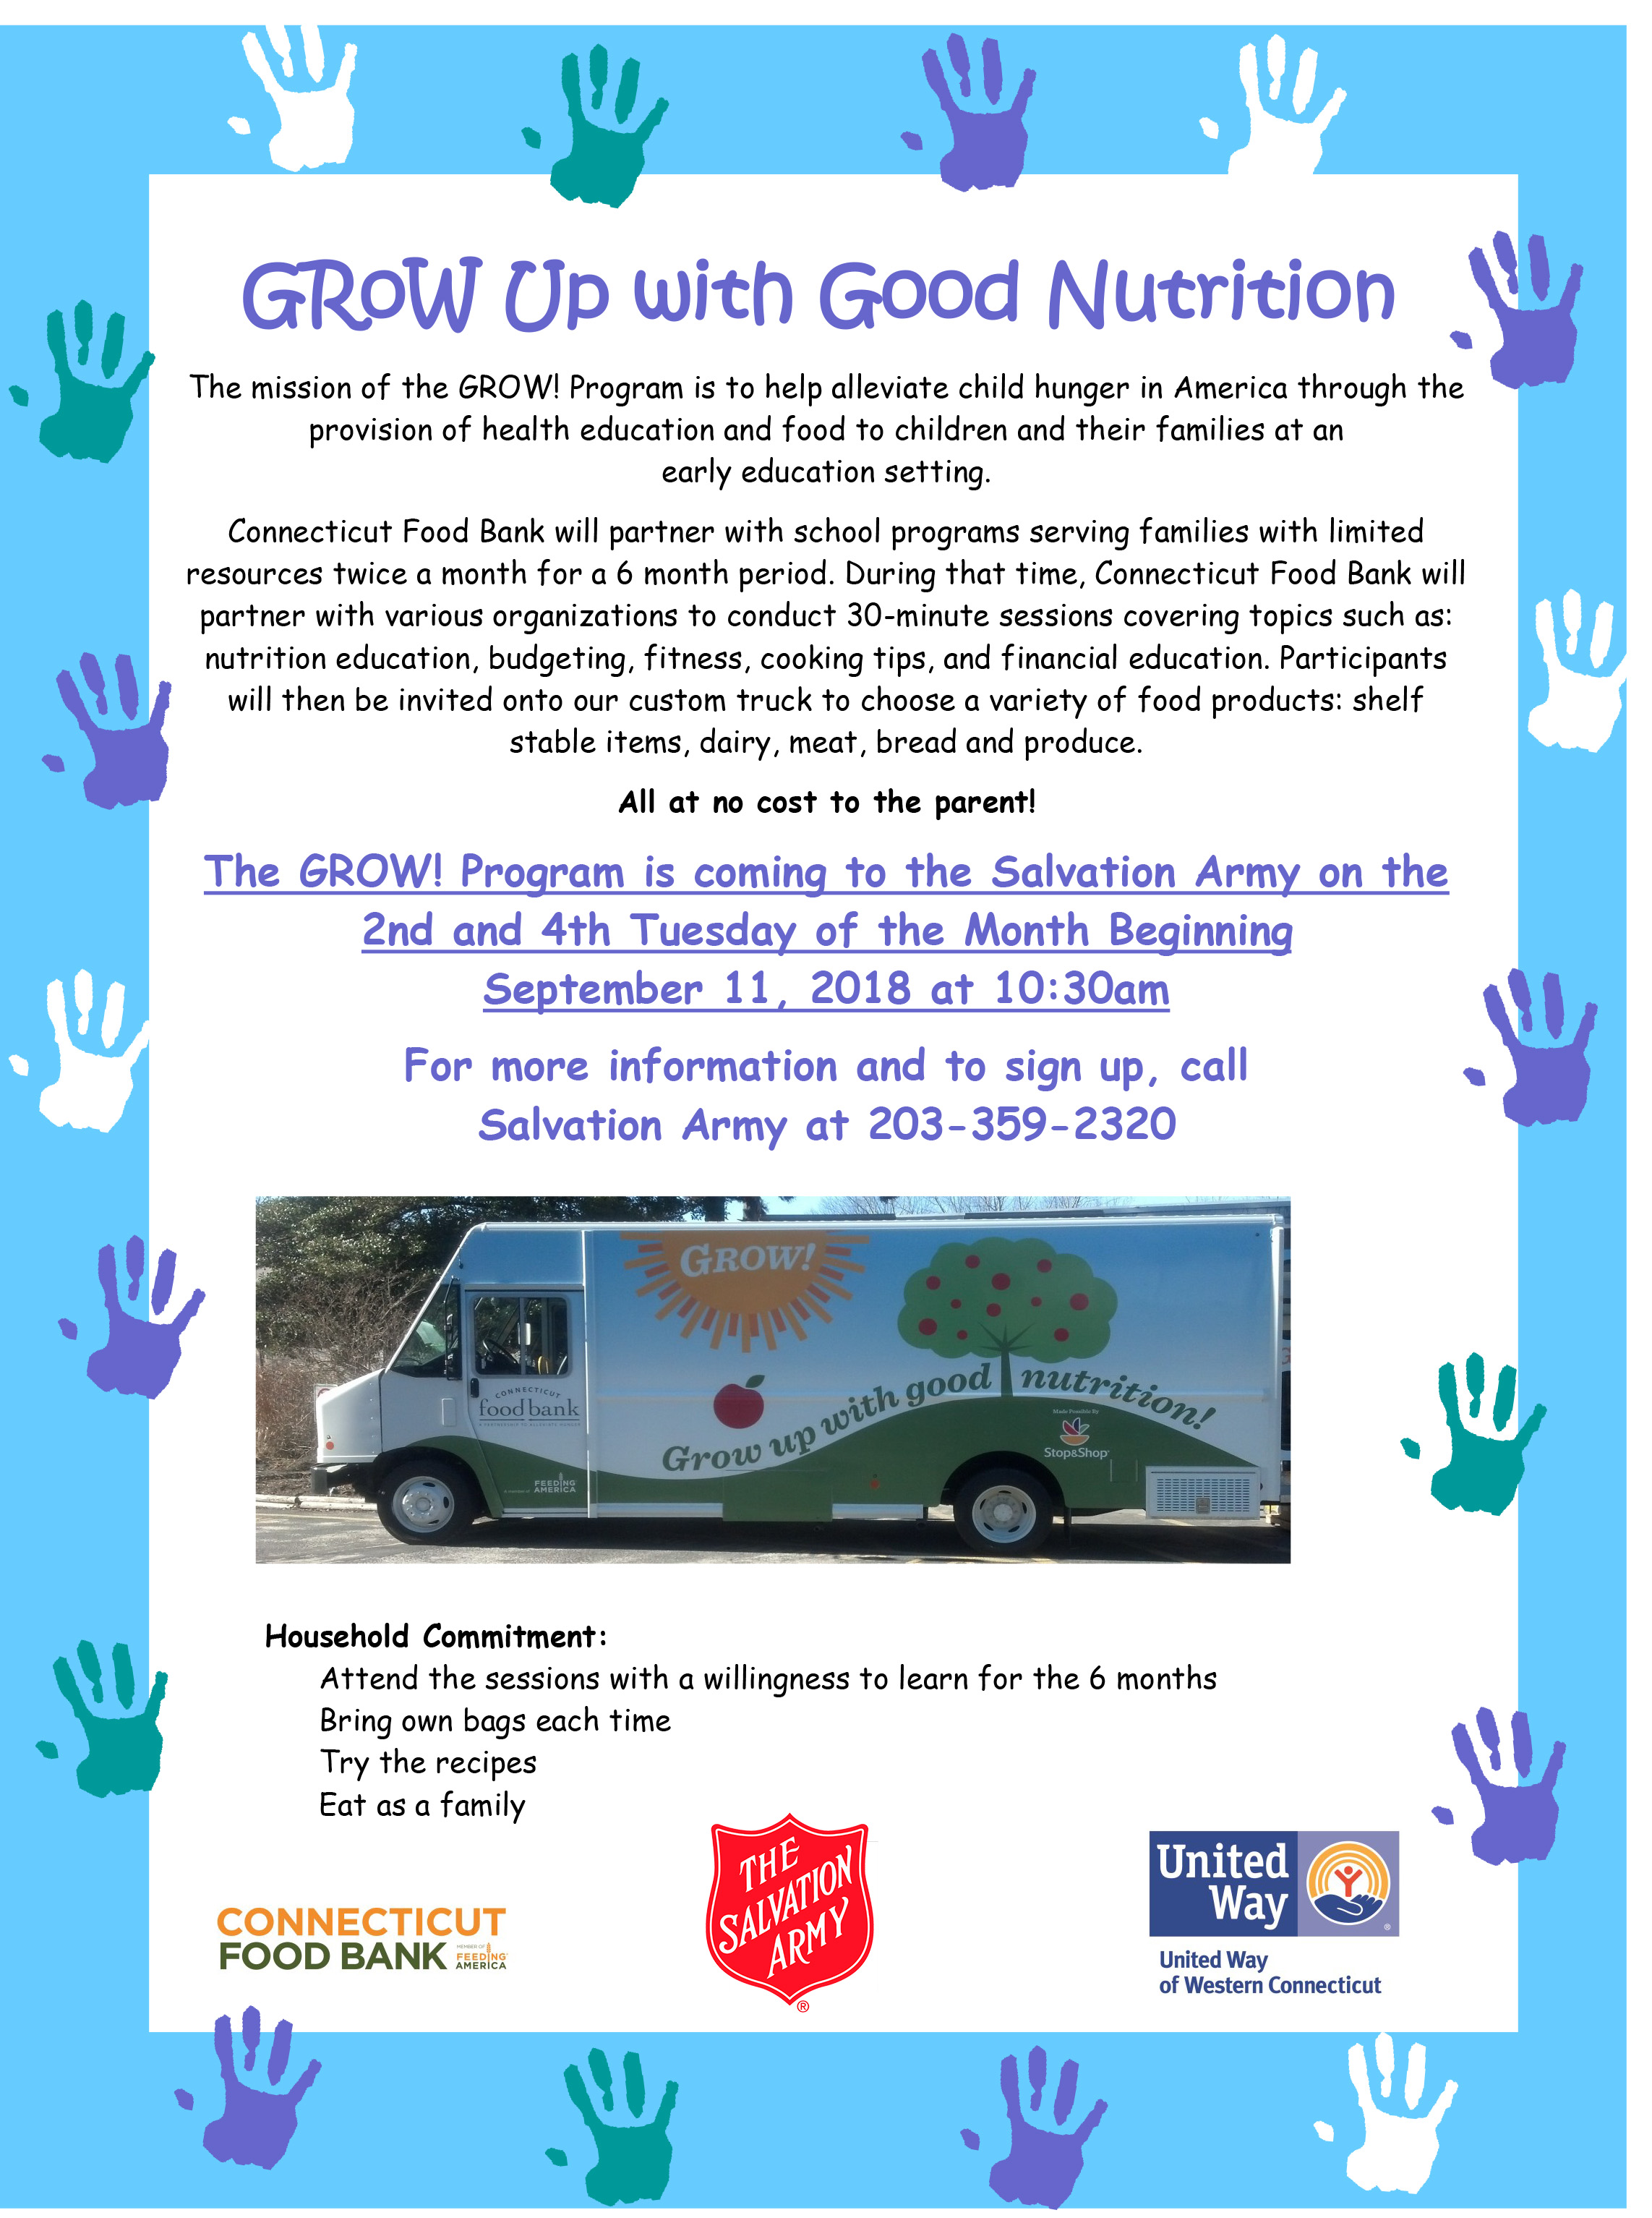 The salvation army helps in connecticut and rhode island the grow truck forumfinder Choice Image